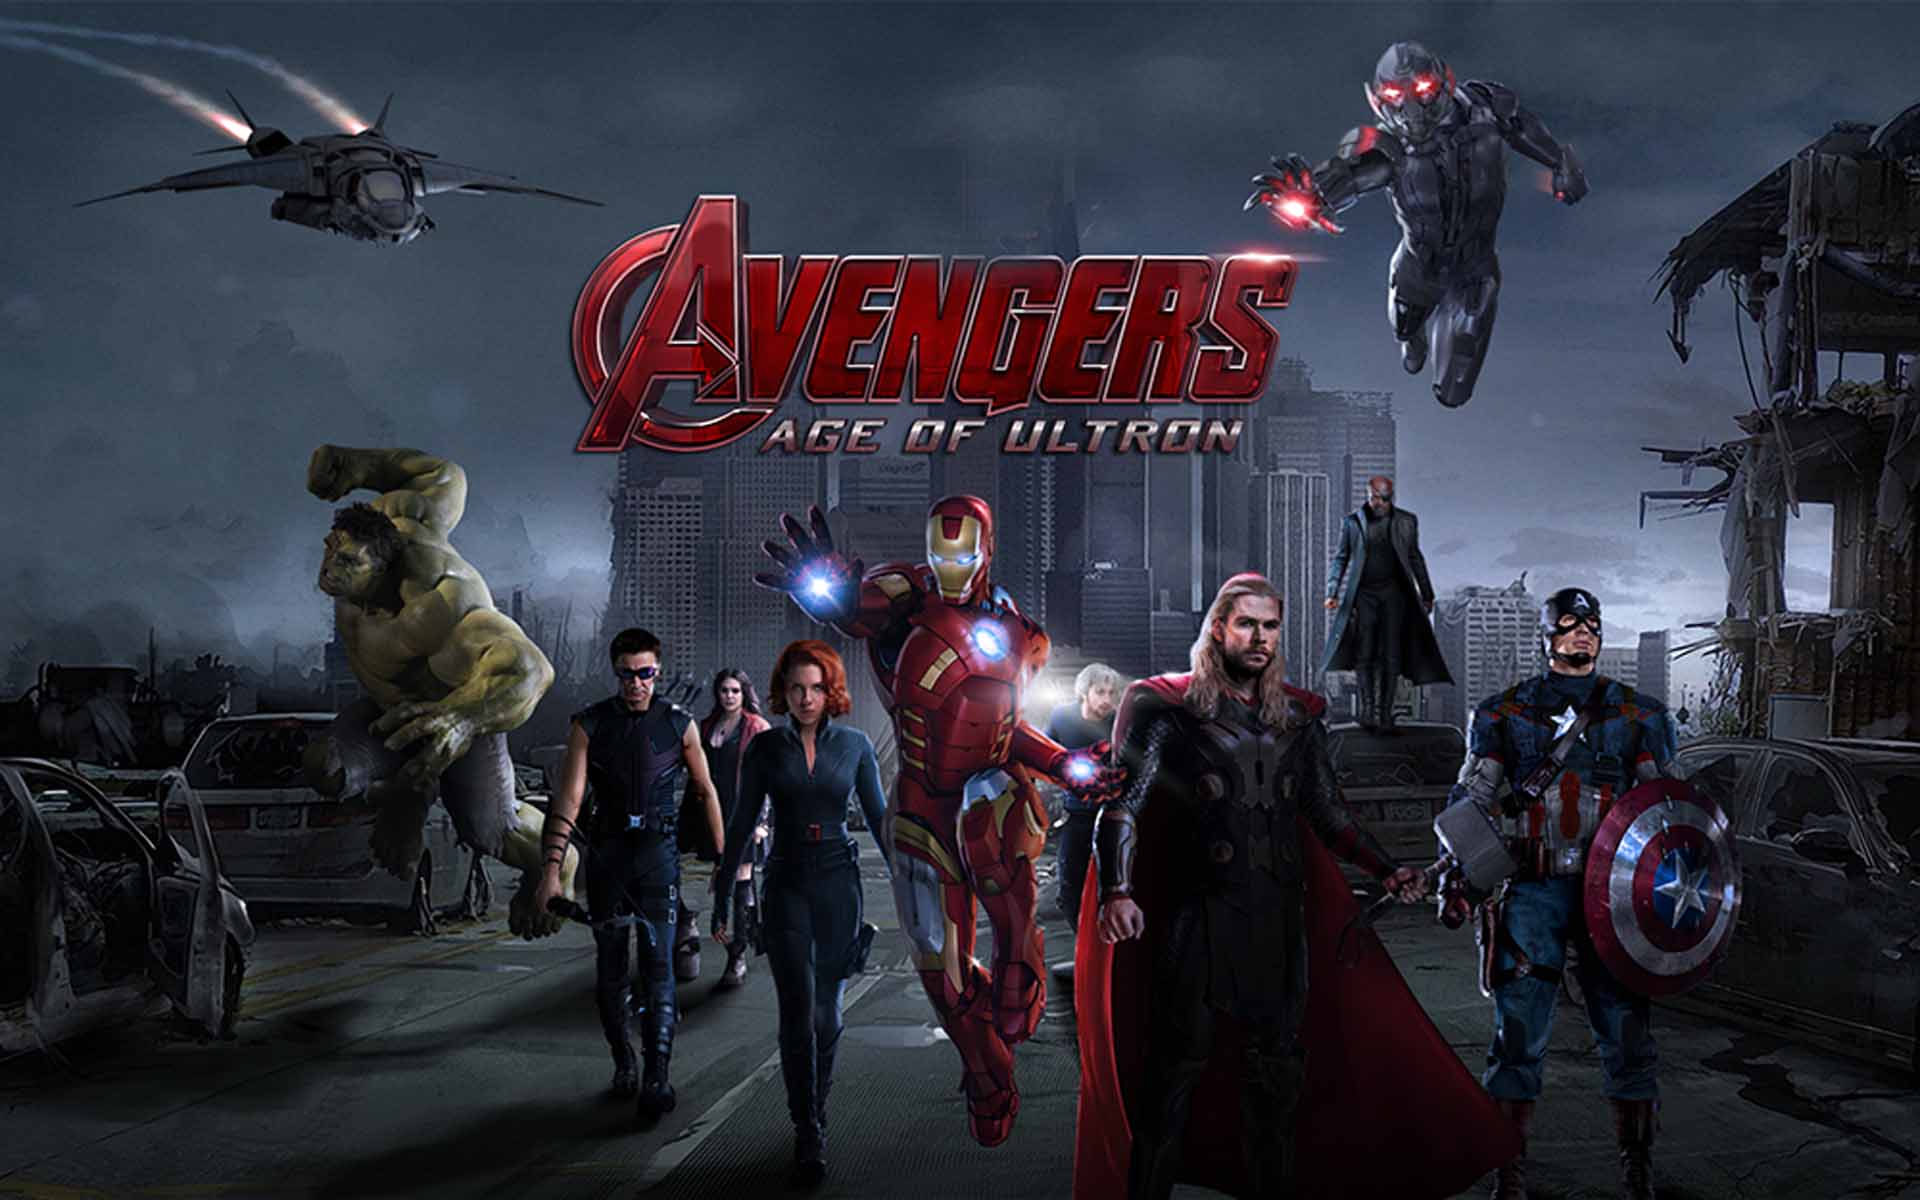 Avengers: Age of Ultron' to Open Early in India